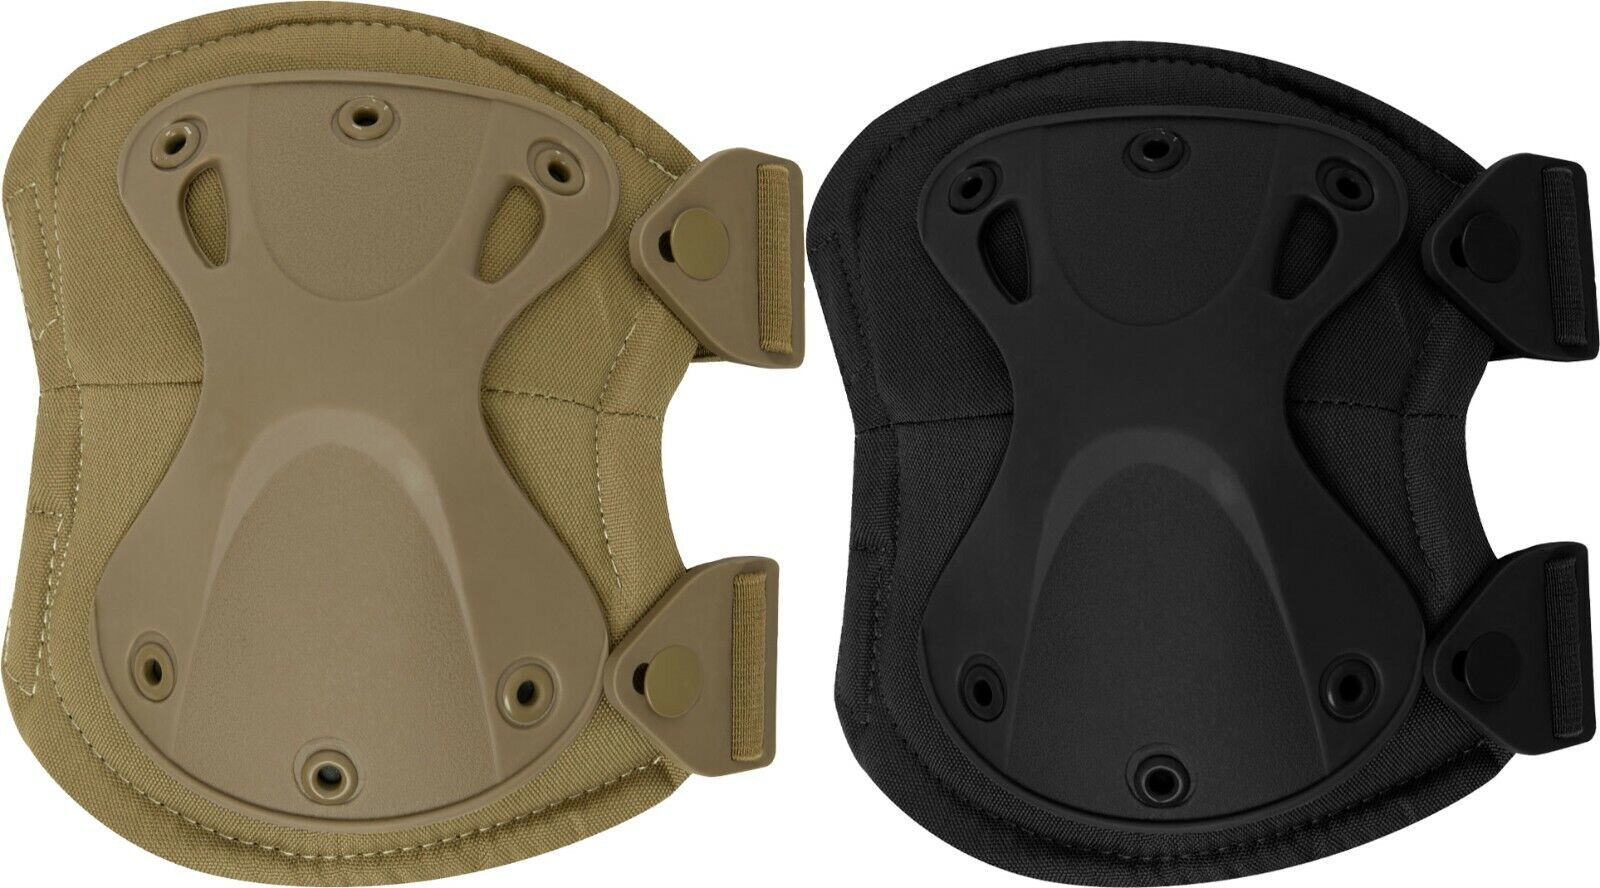 Tactical Low Profile Knee Pads, Thick Flex Superior Combat Protection Hunting